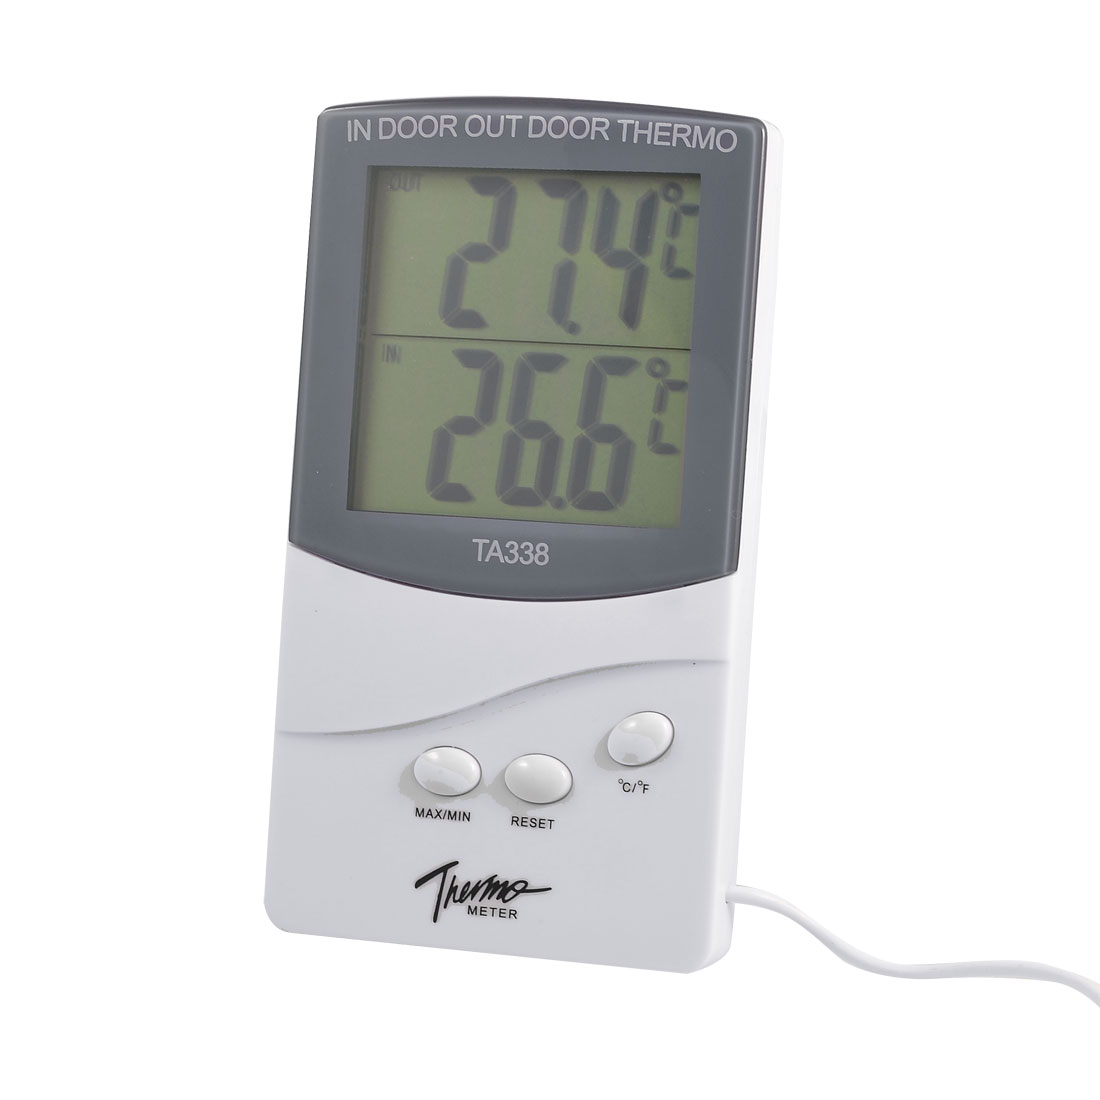 LCD Display Resettable Digital Indoor Outdoor Thermometer